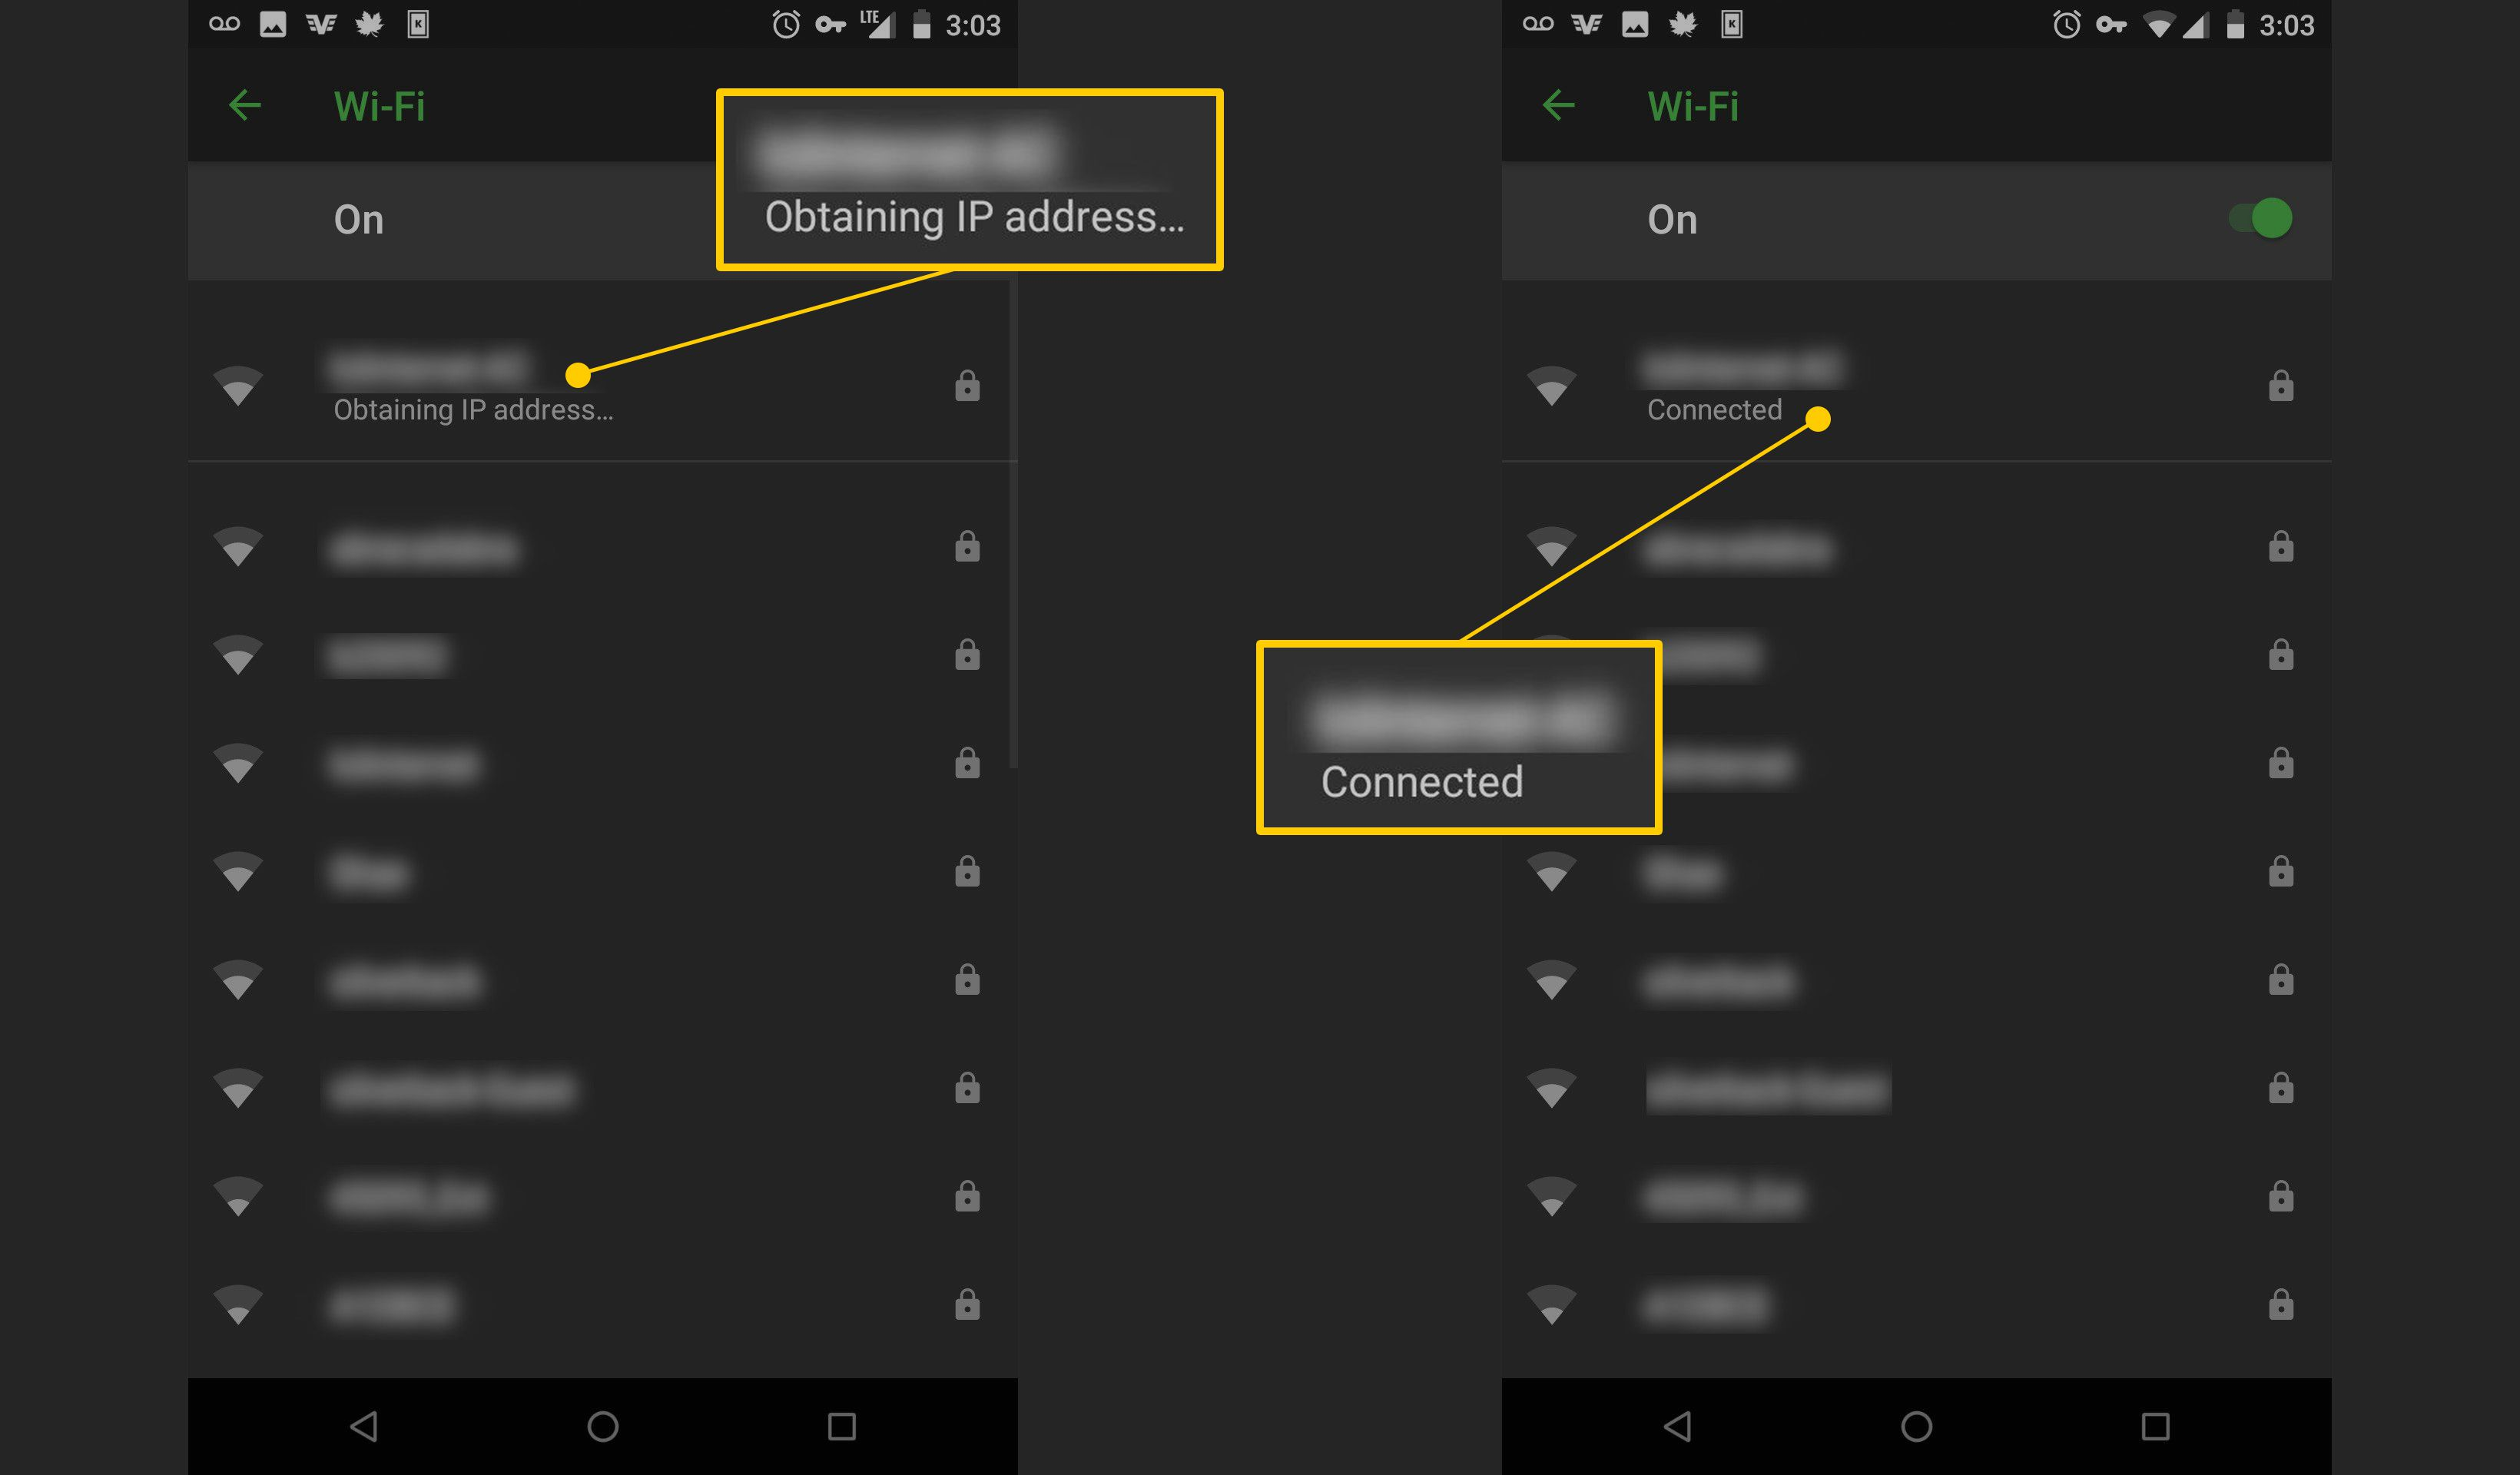 How to Connect Your Android Device to Wi-FI